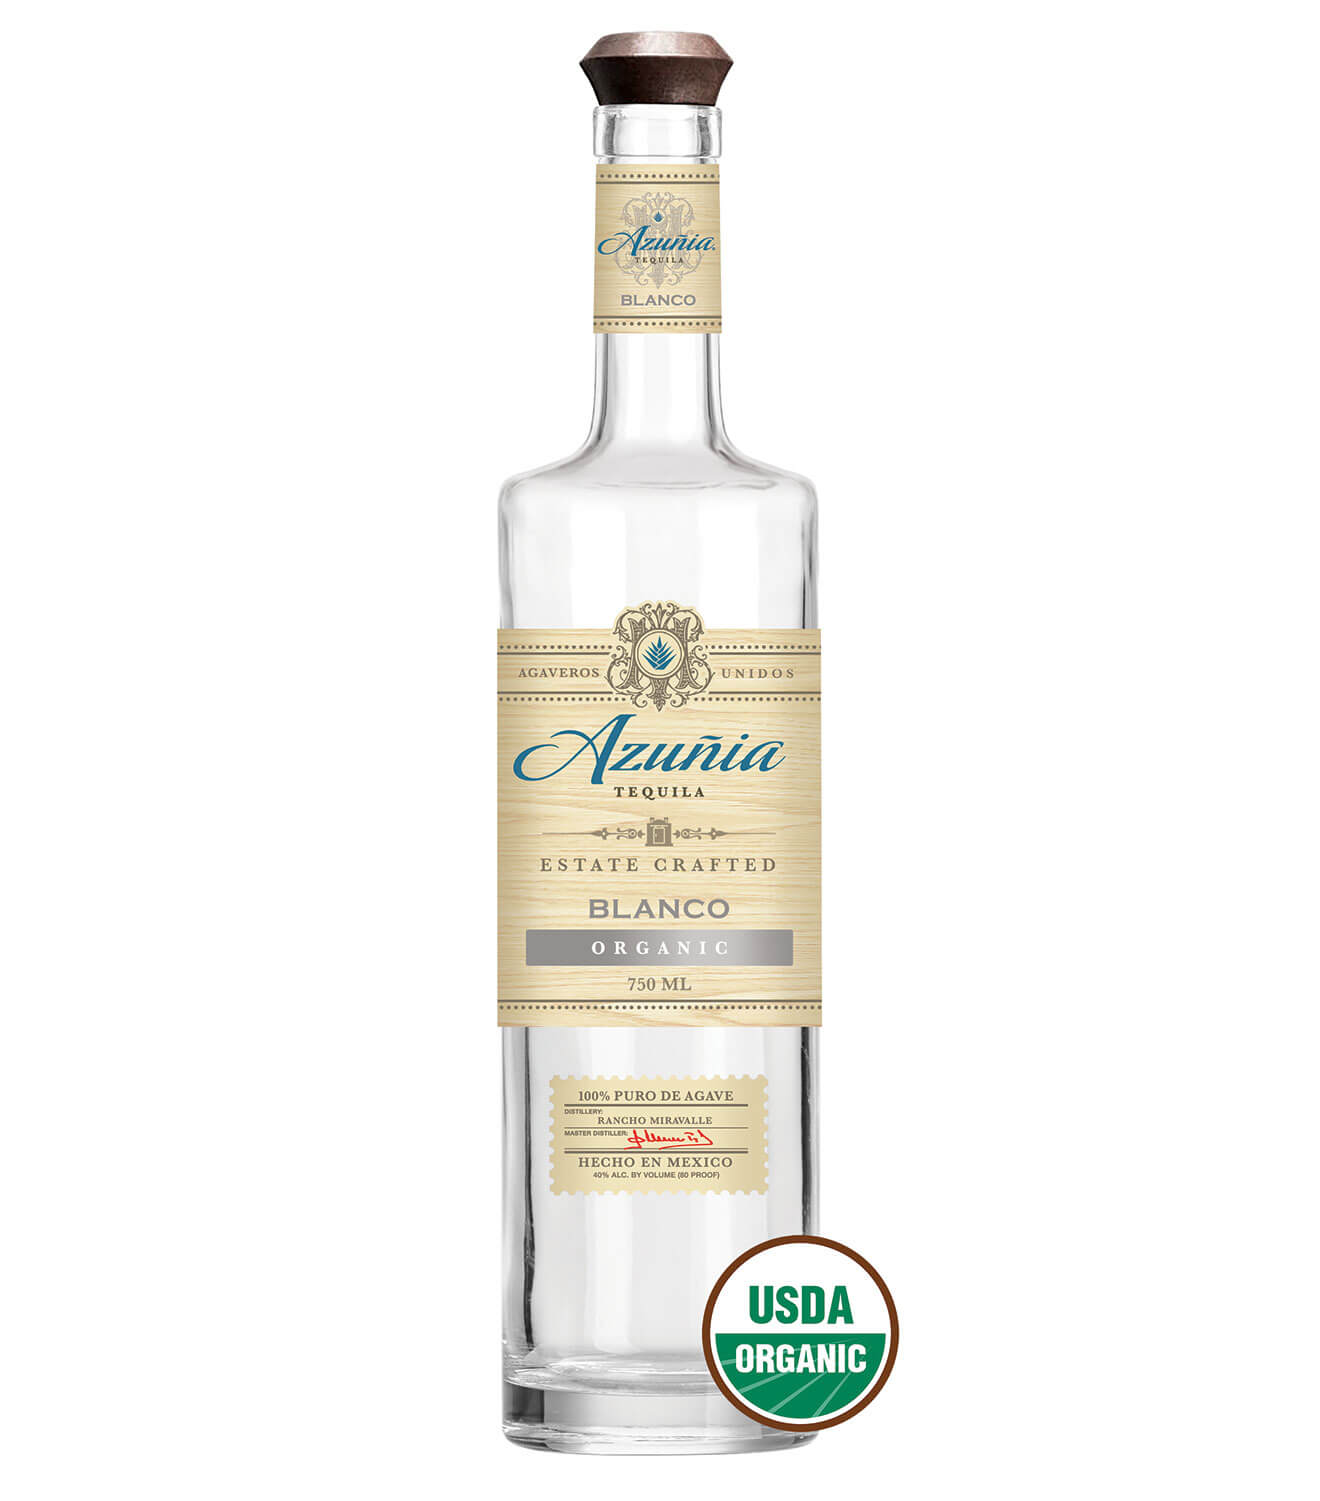 Azuñia Blanco Tequila, bottle on white